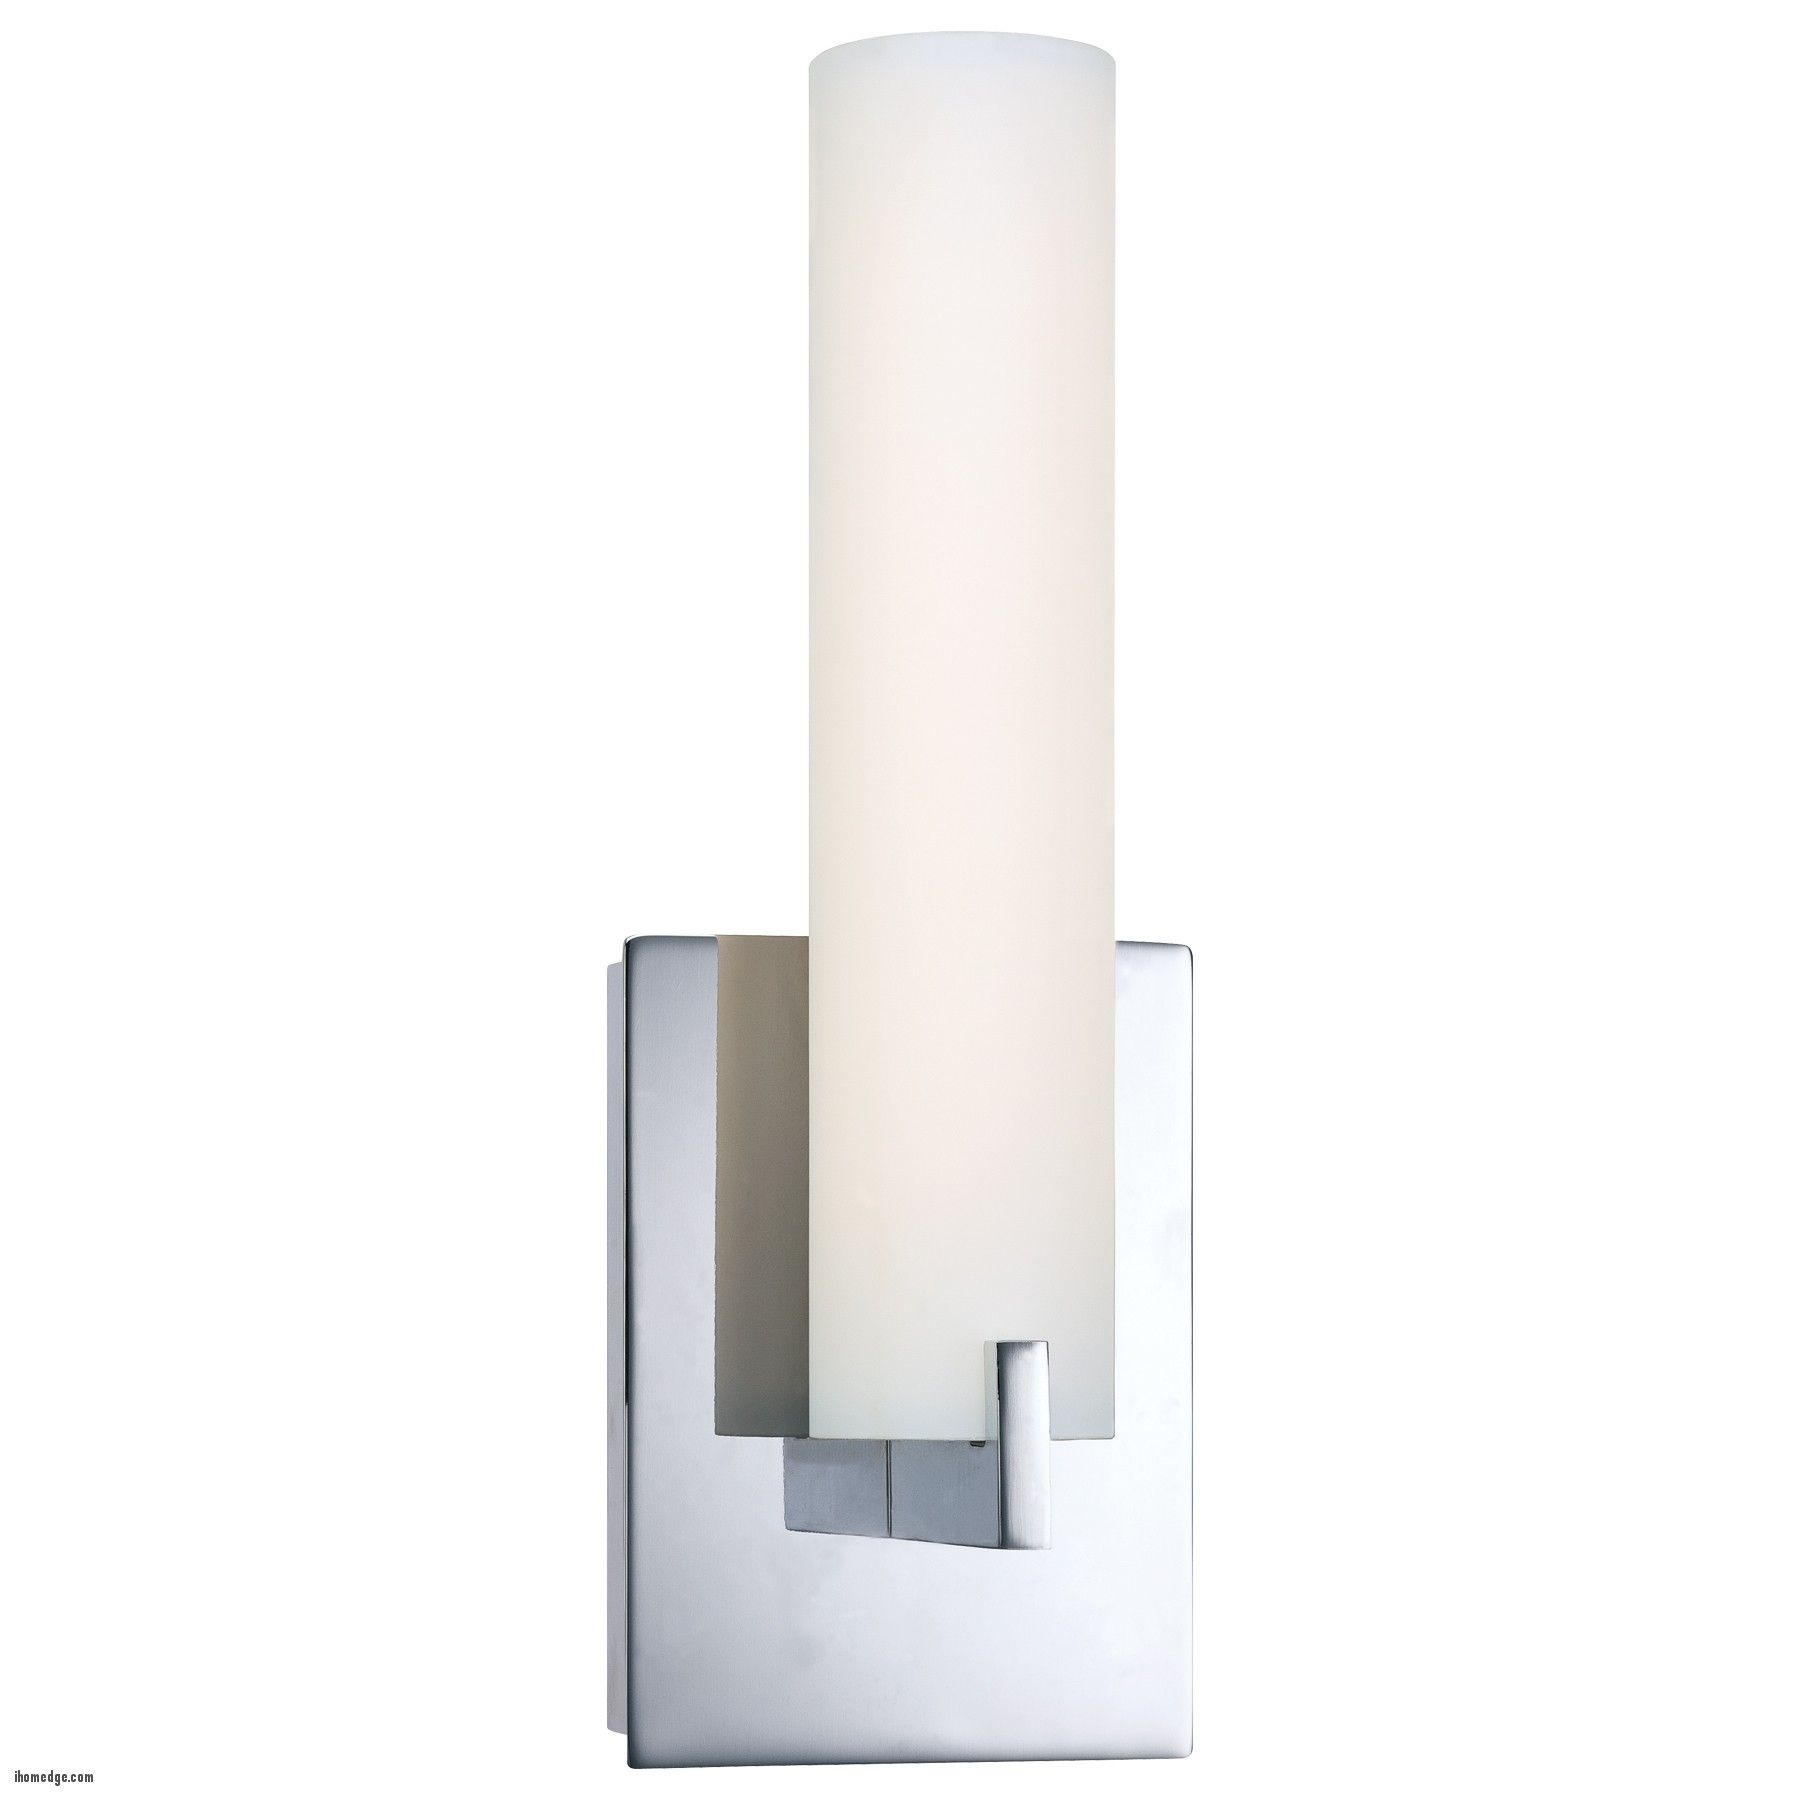 Cool Elegant Wall Mounted Plug In Lights Flush Mount Bathroom Lowes With Led For